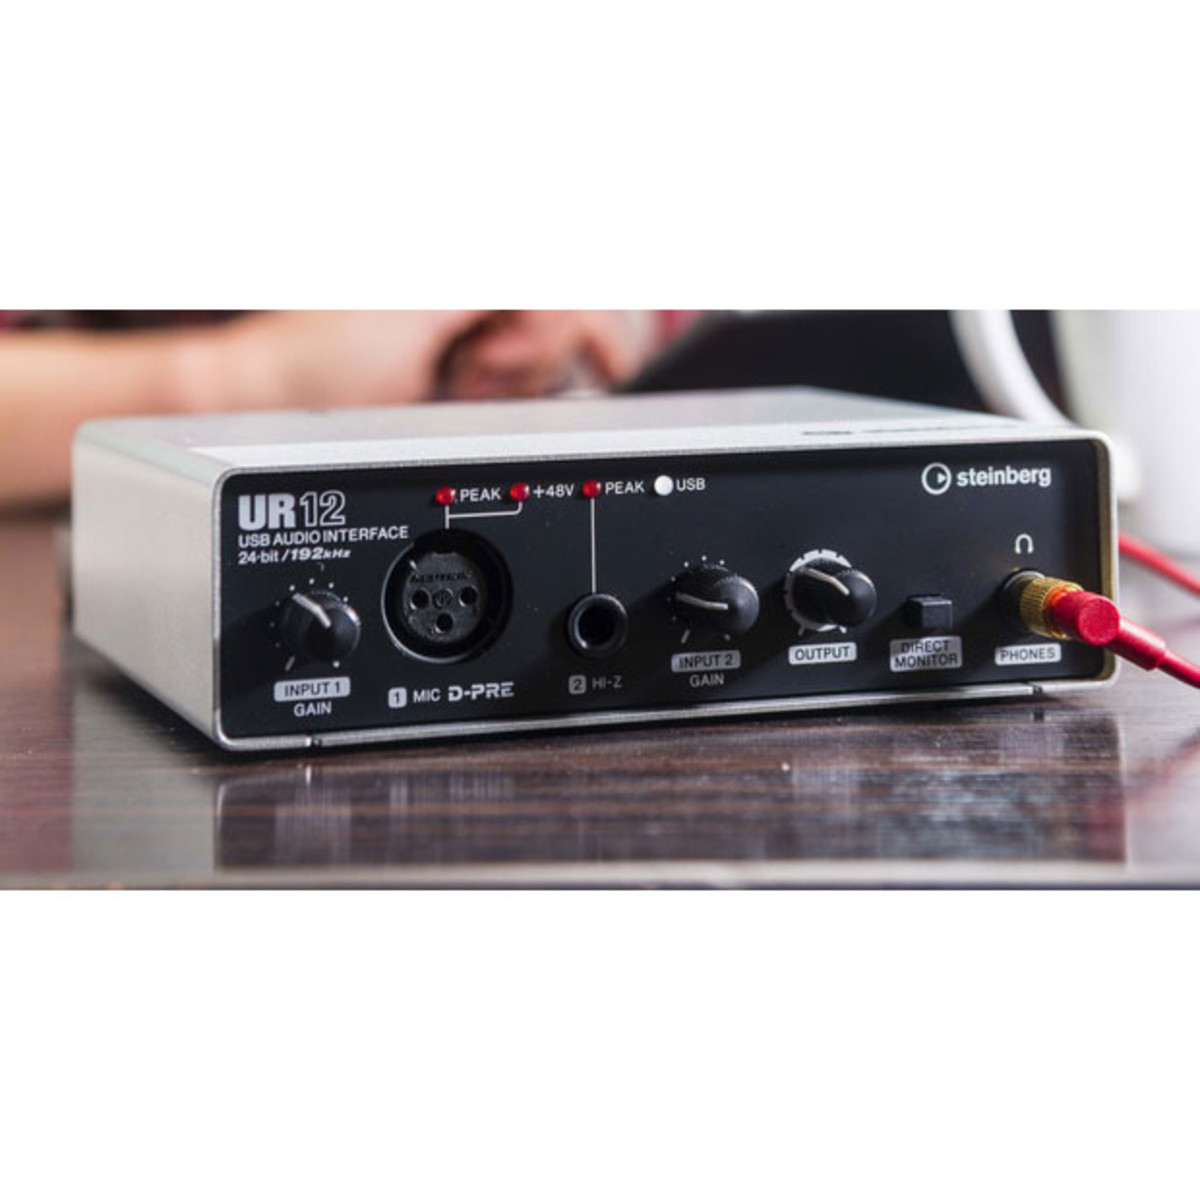 steinberg ur 12 usb audio interface ios ready nearly new at. Black Bedroom Furniture Sets. Home Design Ideas